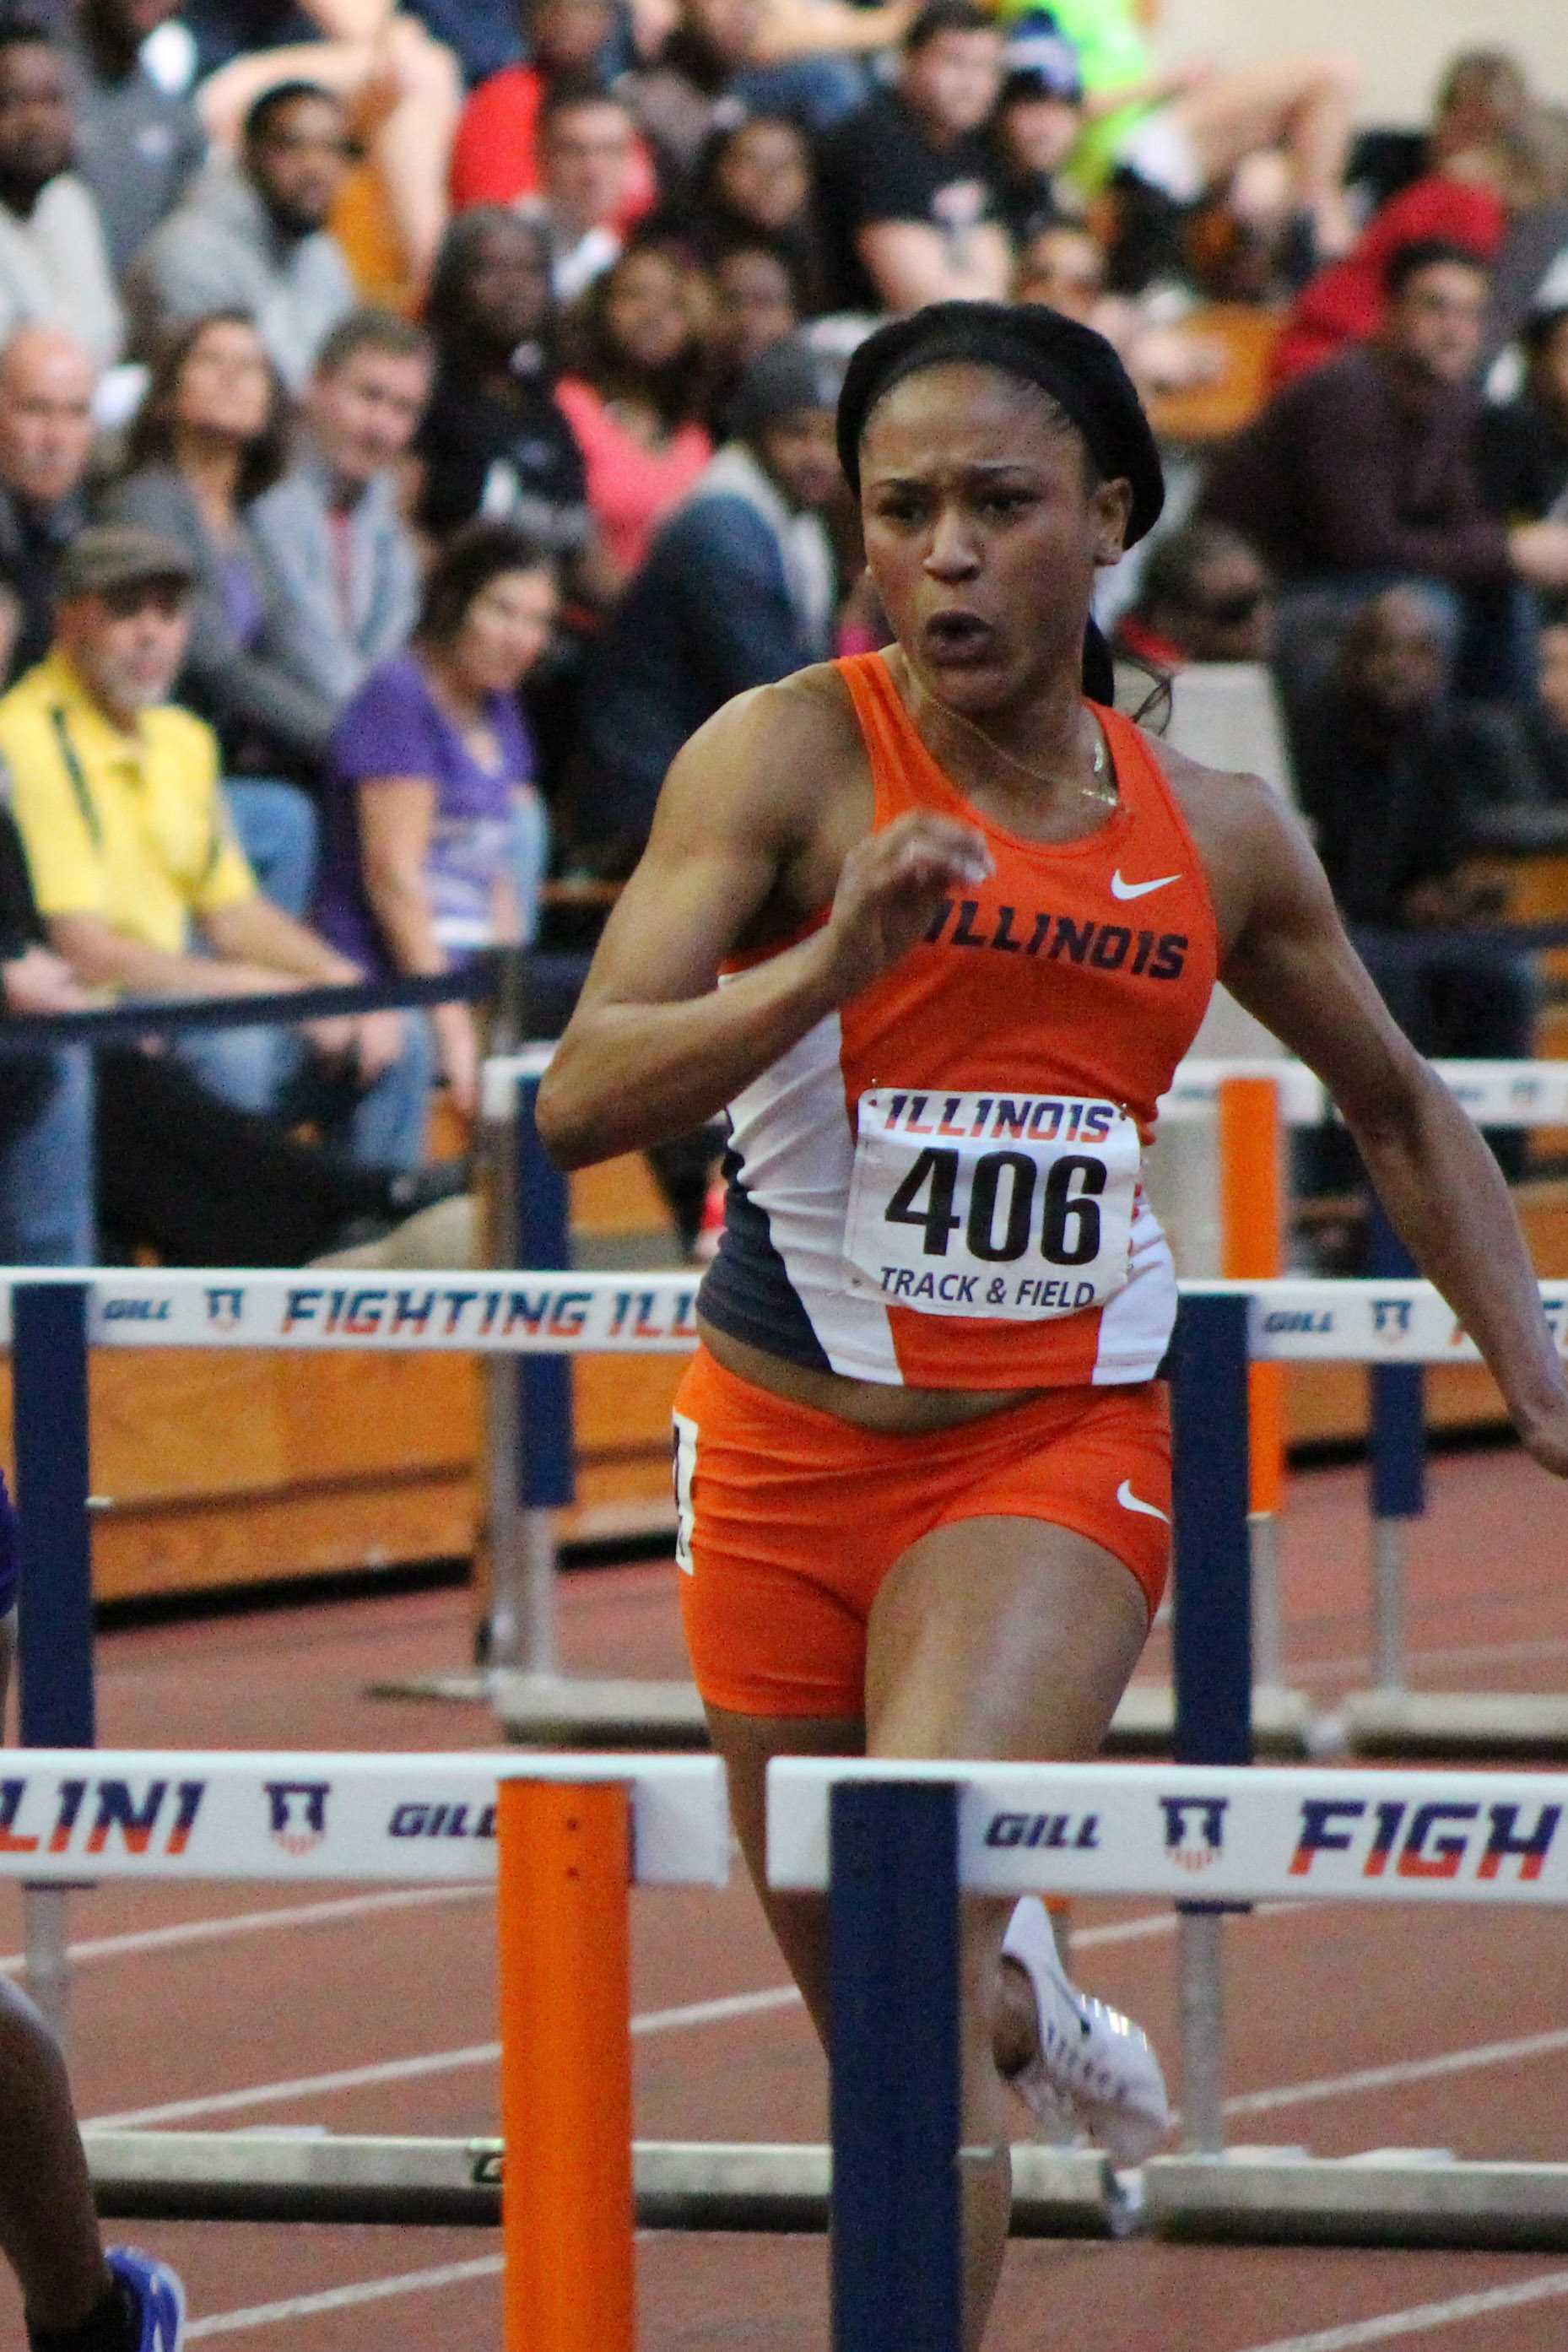 Illinois' Pedra Seymour prepares to jump a hurdle in the Orange and Blue meet at the Armory on Saturday, Feb. 20, 2016.